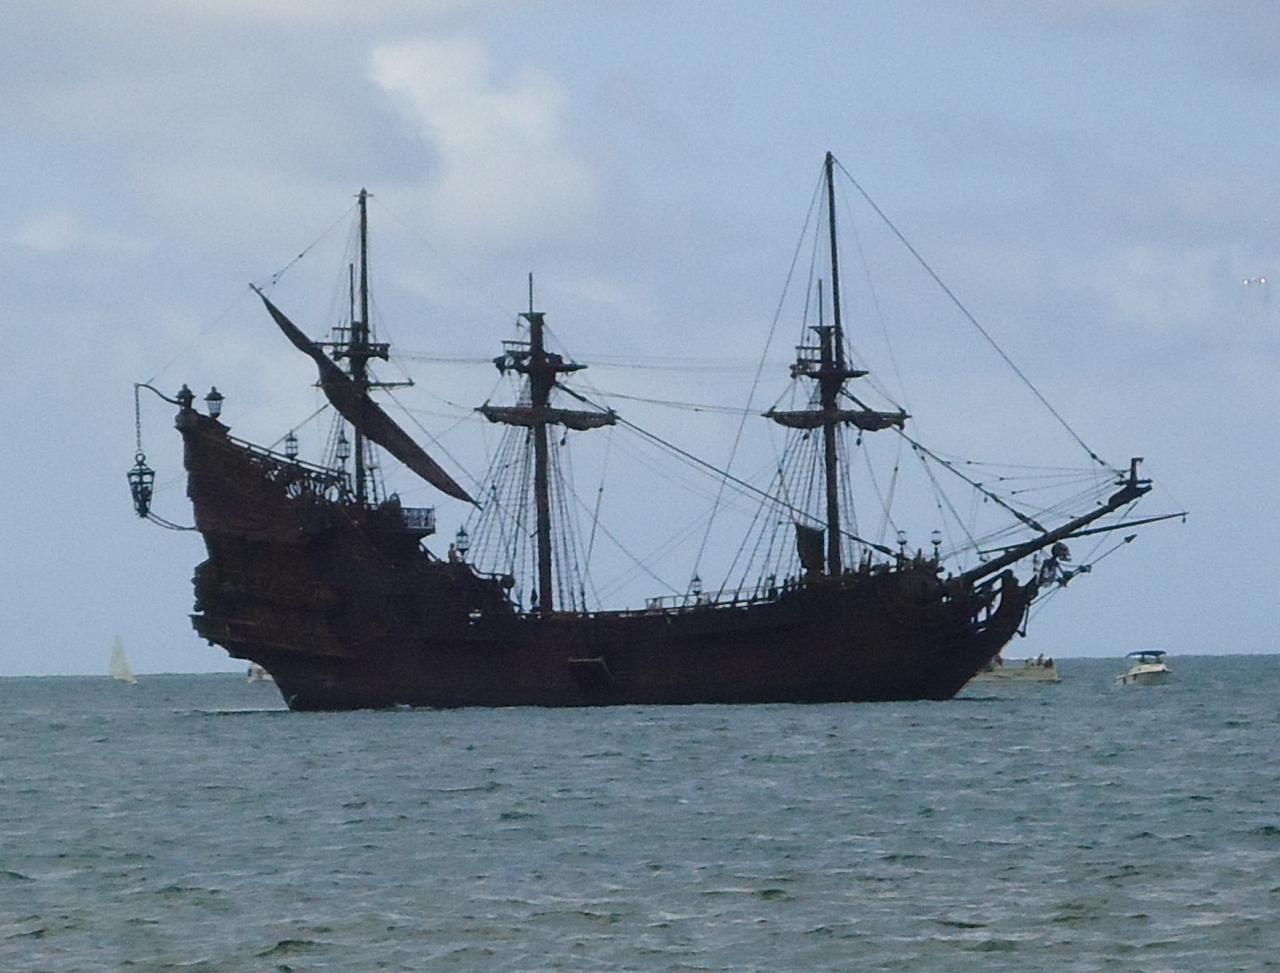 pirates of the caribbean ship black pearl wallpaper